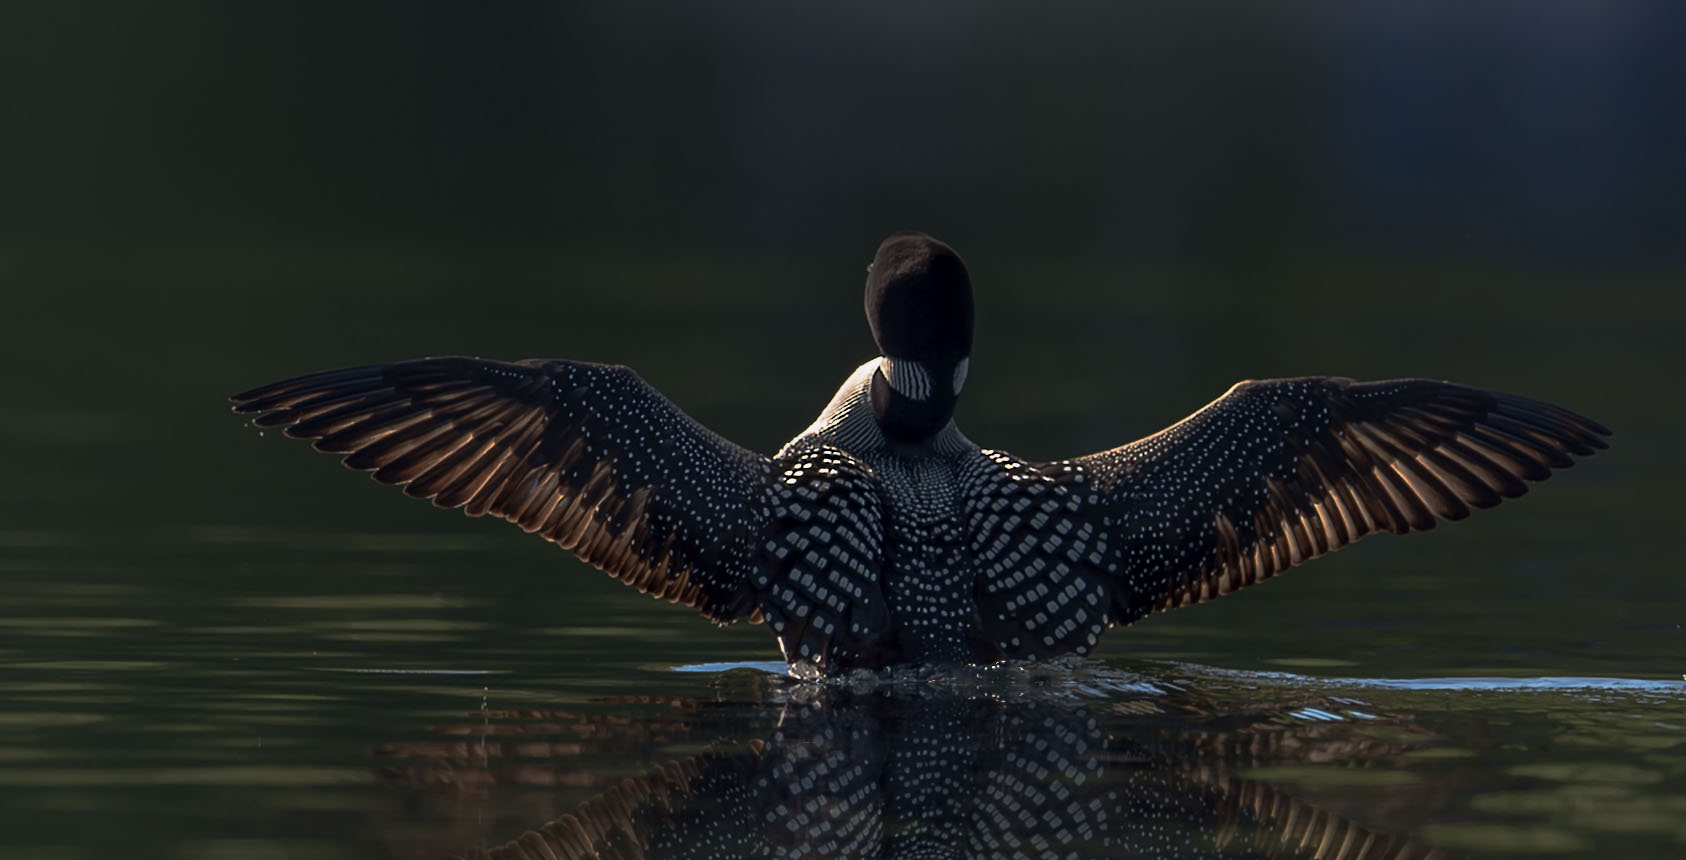 Common loon photography workshops